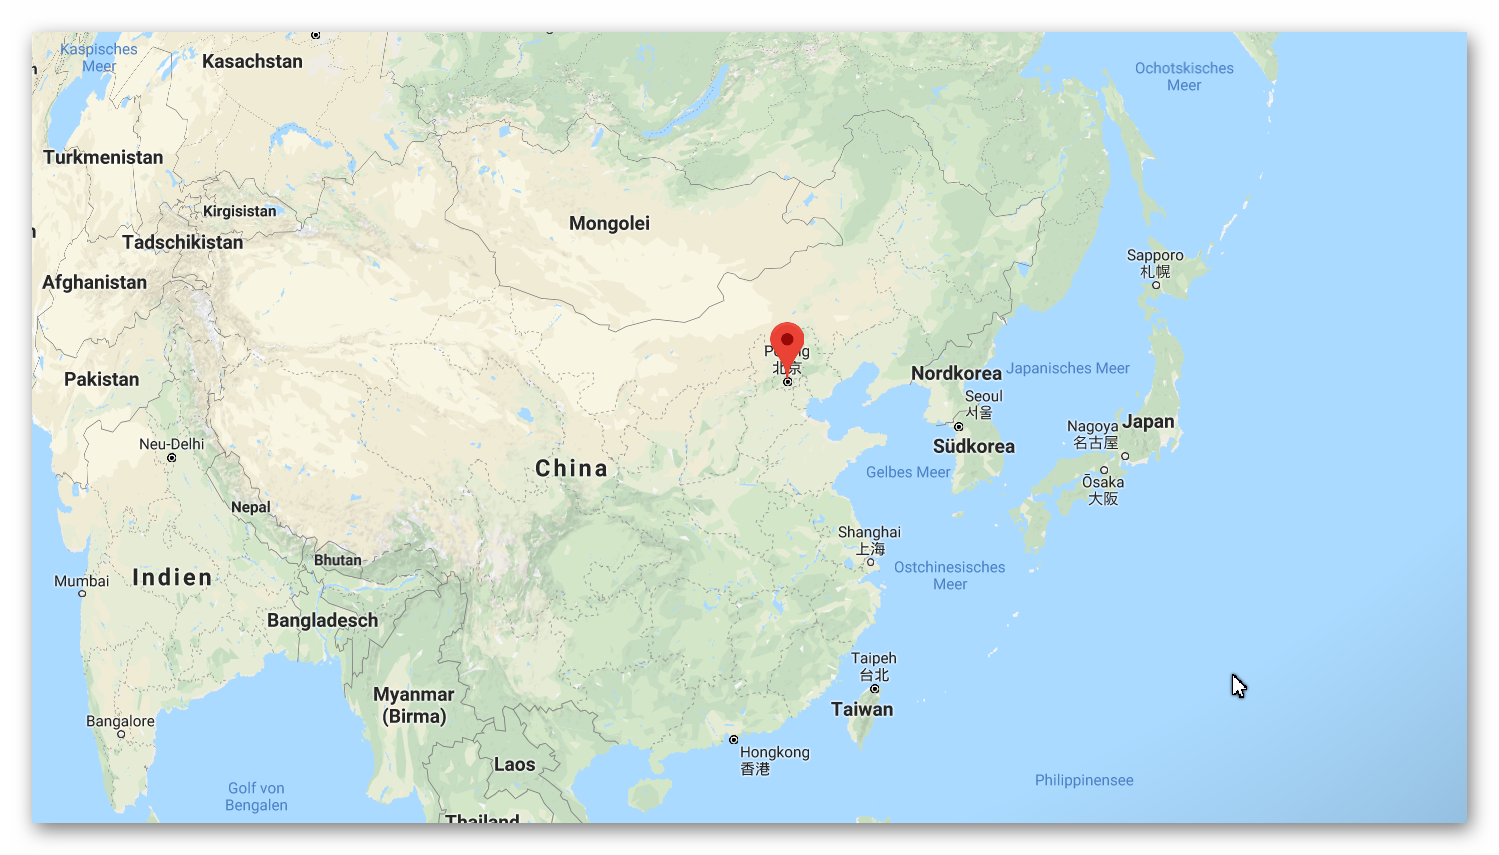 China and Japen on the map